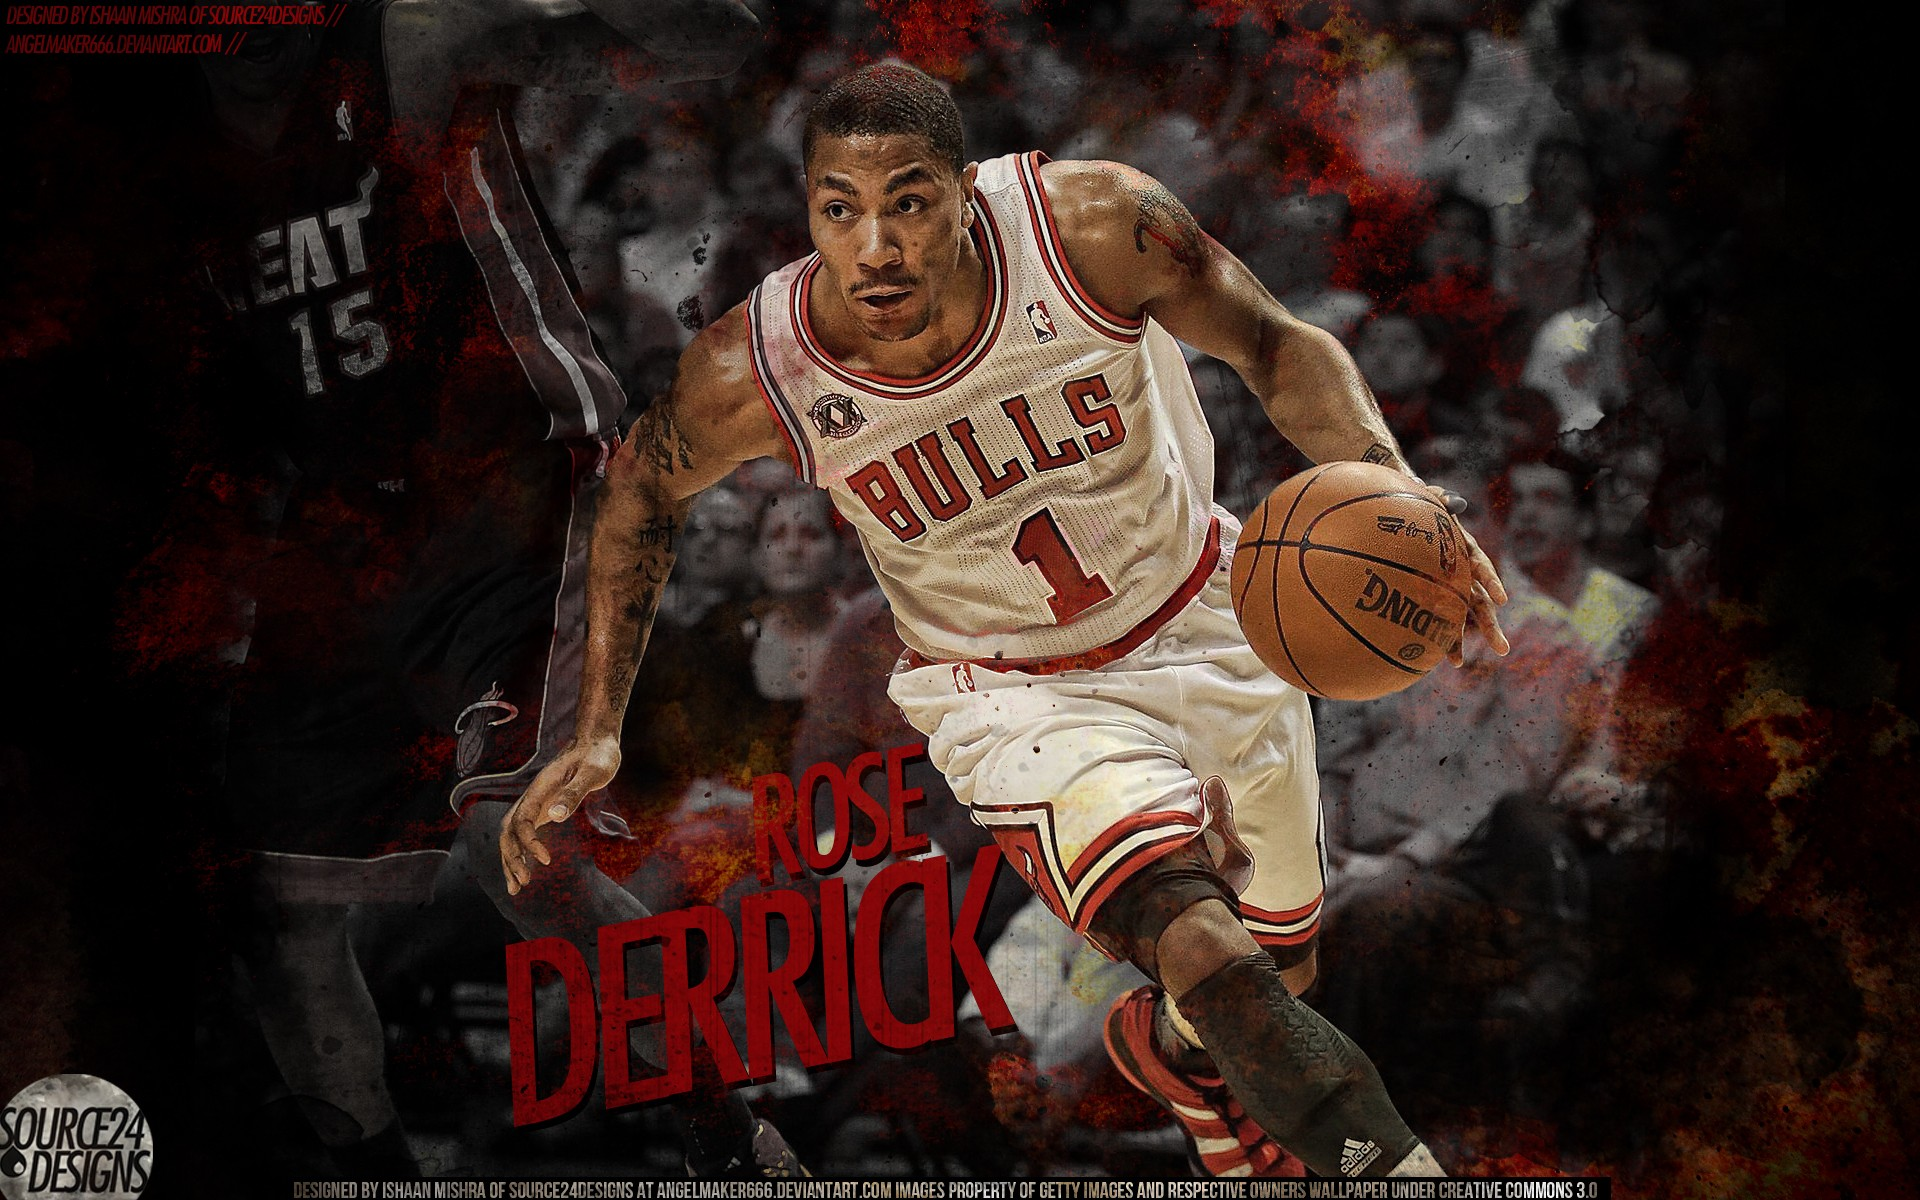 rate select rating give derrick rose 1 5 give derrick rose 2 1920x1200